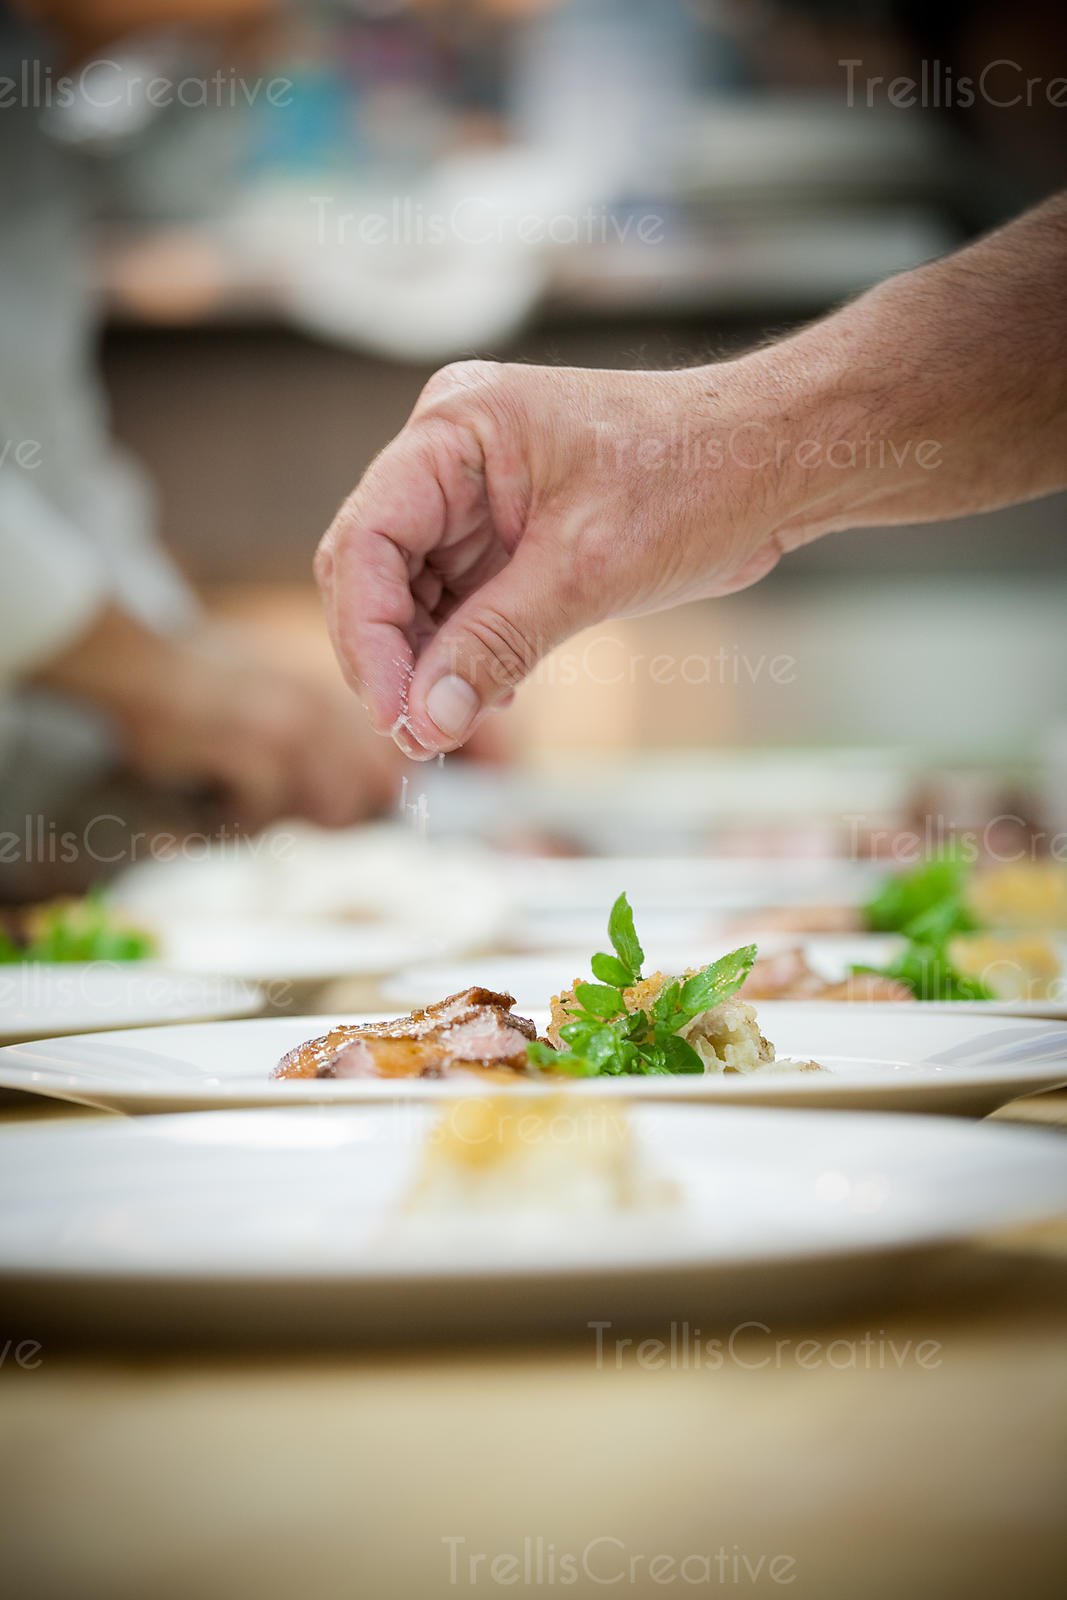 A man's hand sprinkles salt on a plate of meat